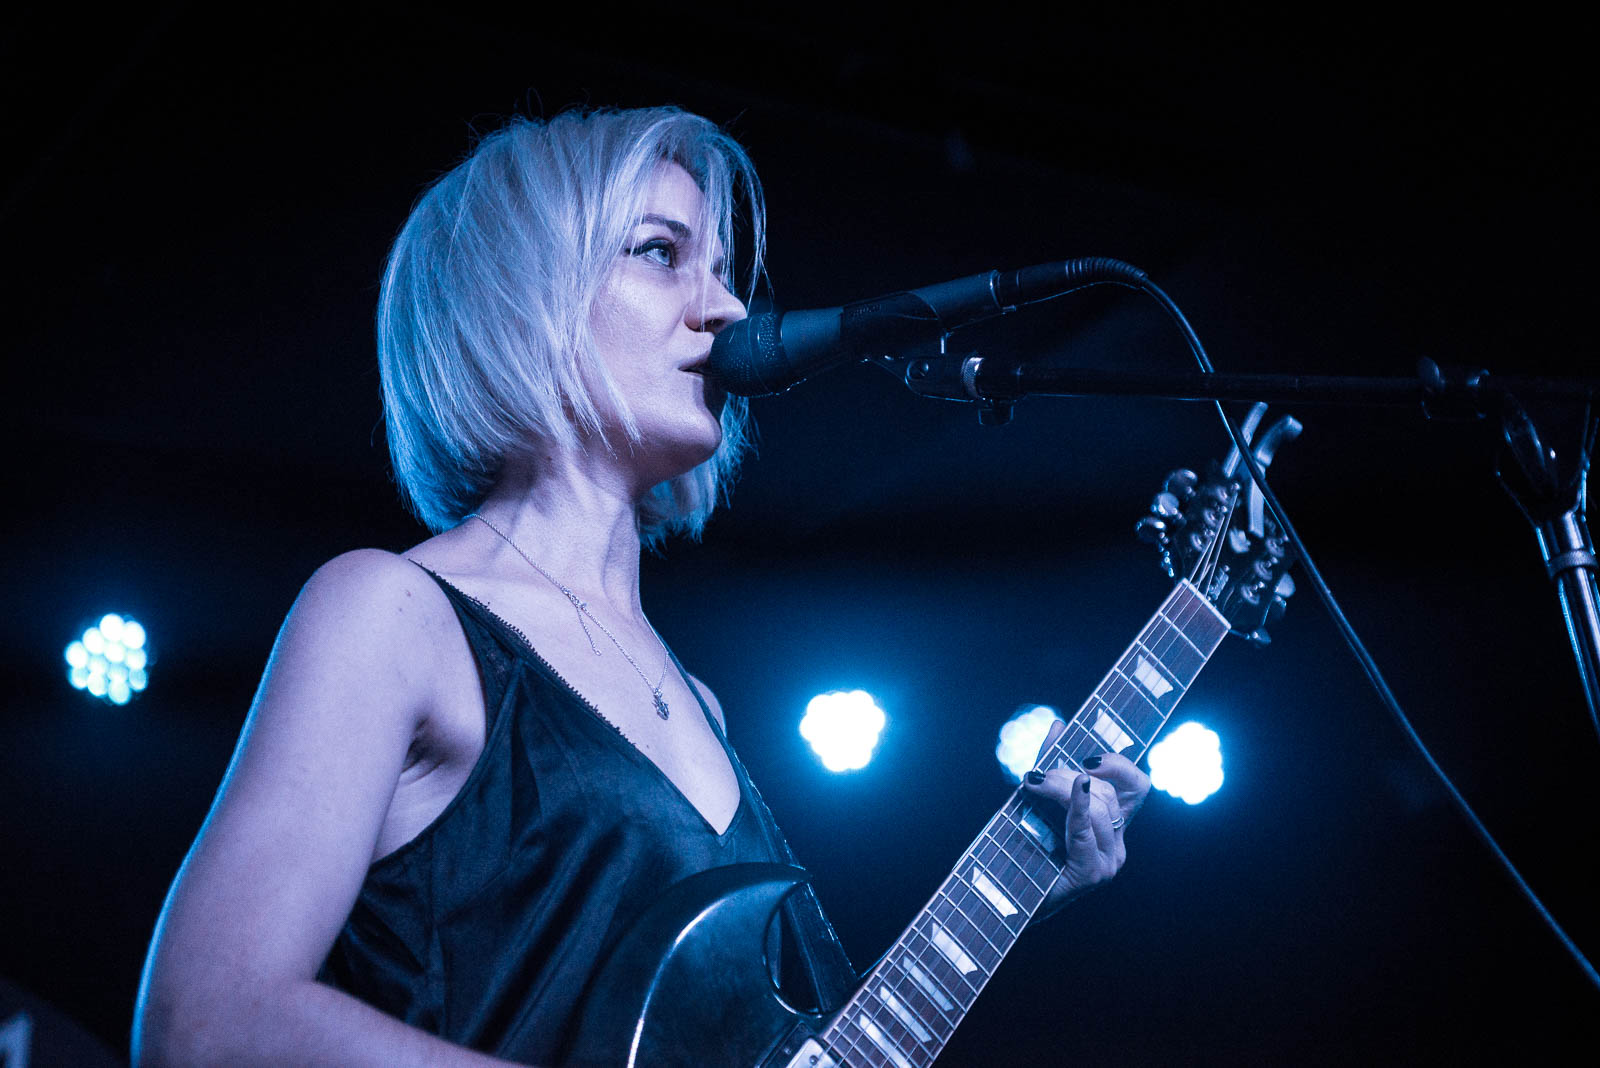 Bex Sheers of De Lilith performing at Knitting Factory on Thursday, August 23, 2018.